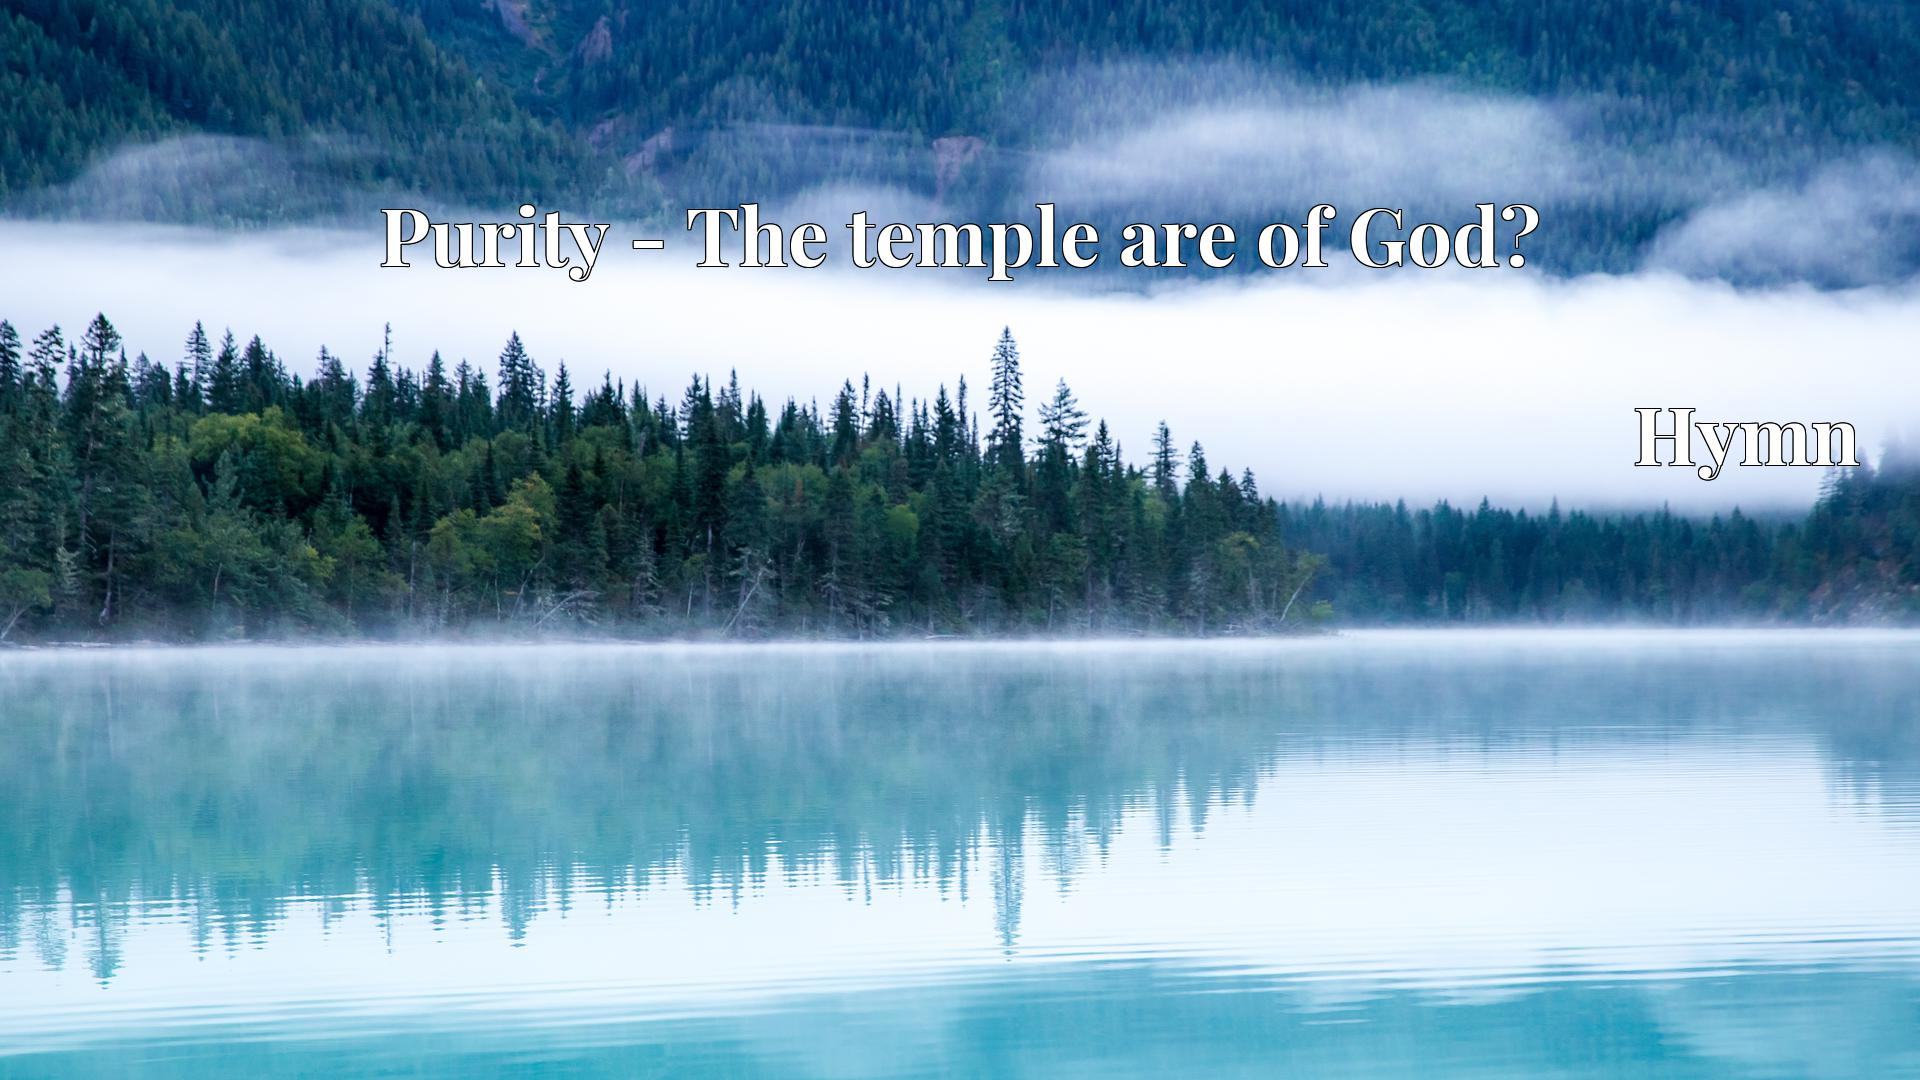 Purity - The temple are of God? - Hymn